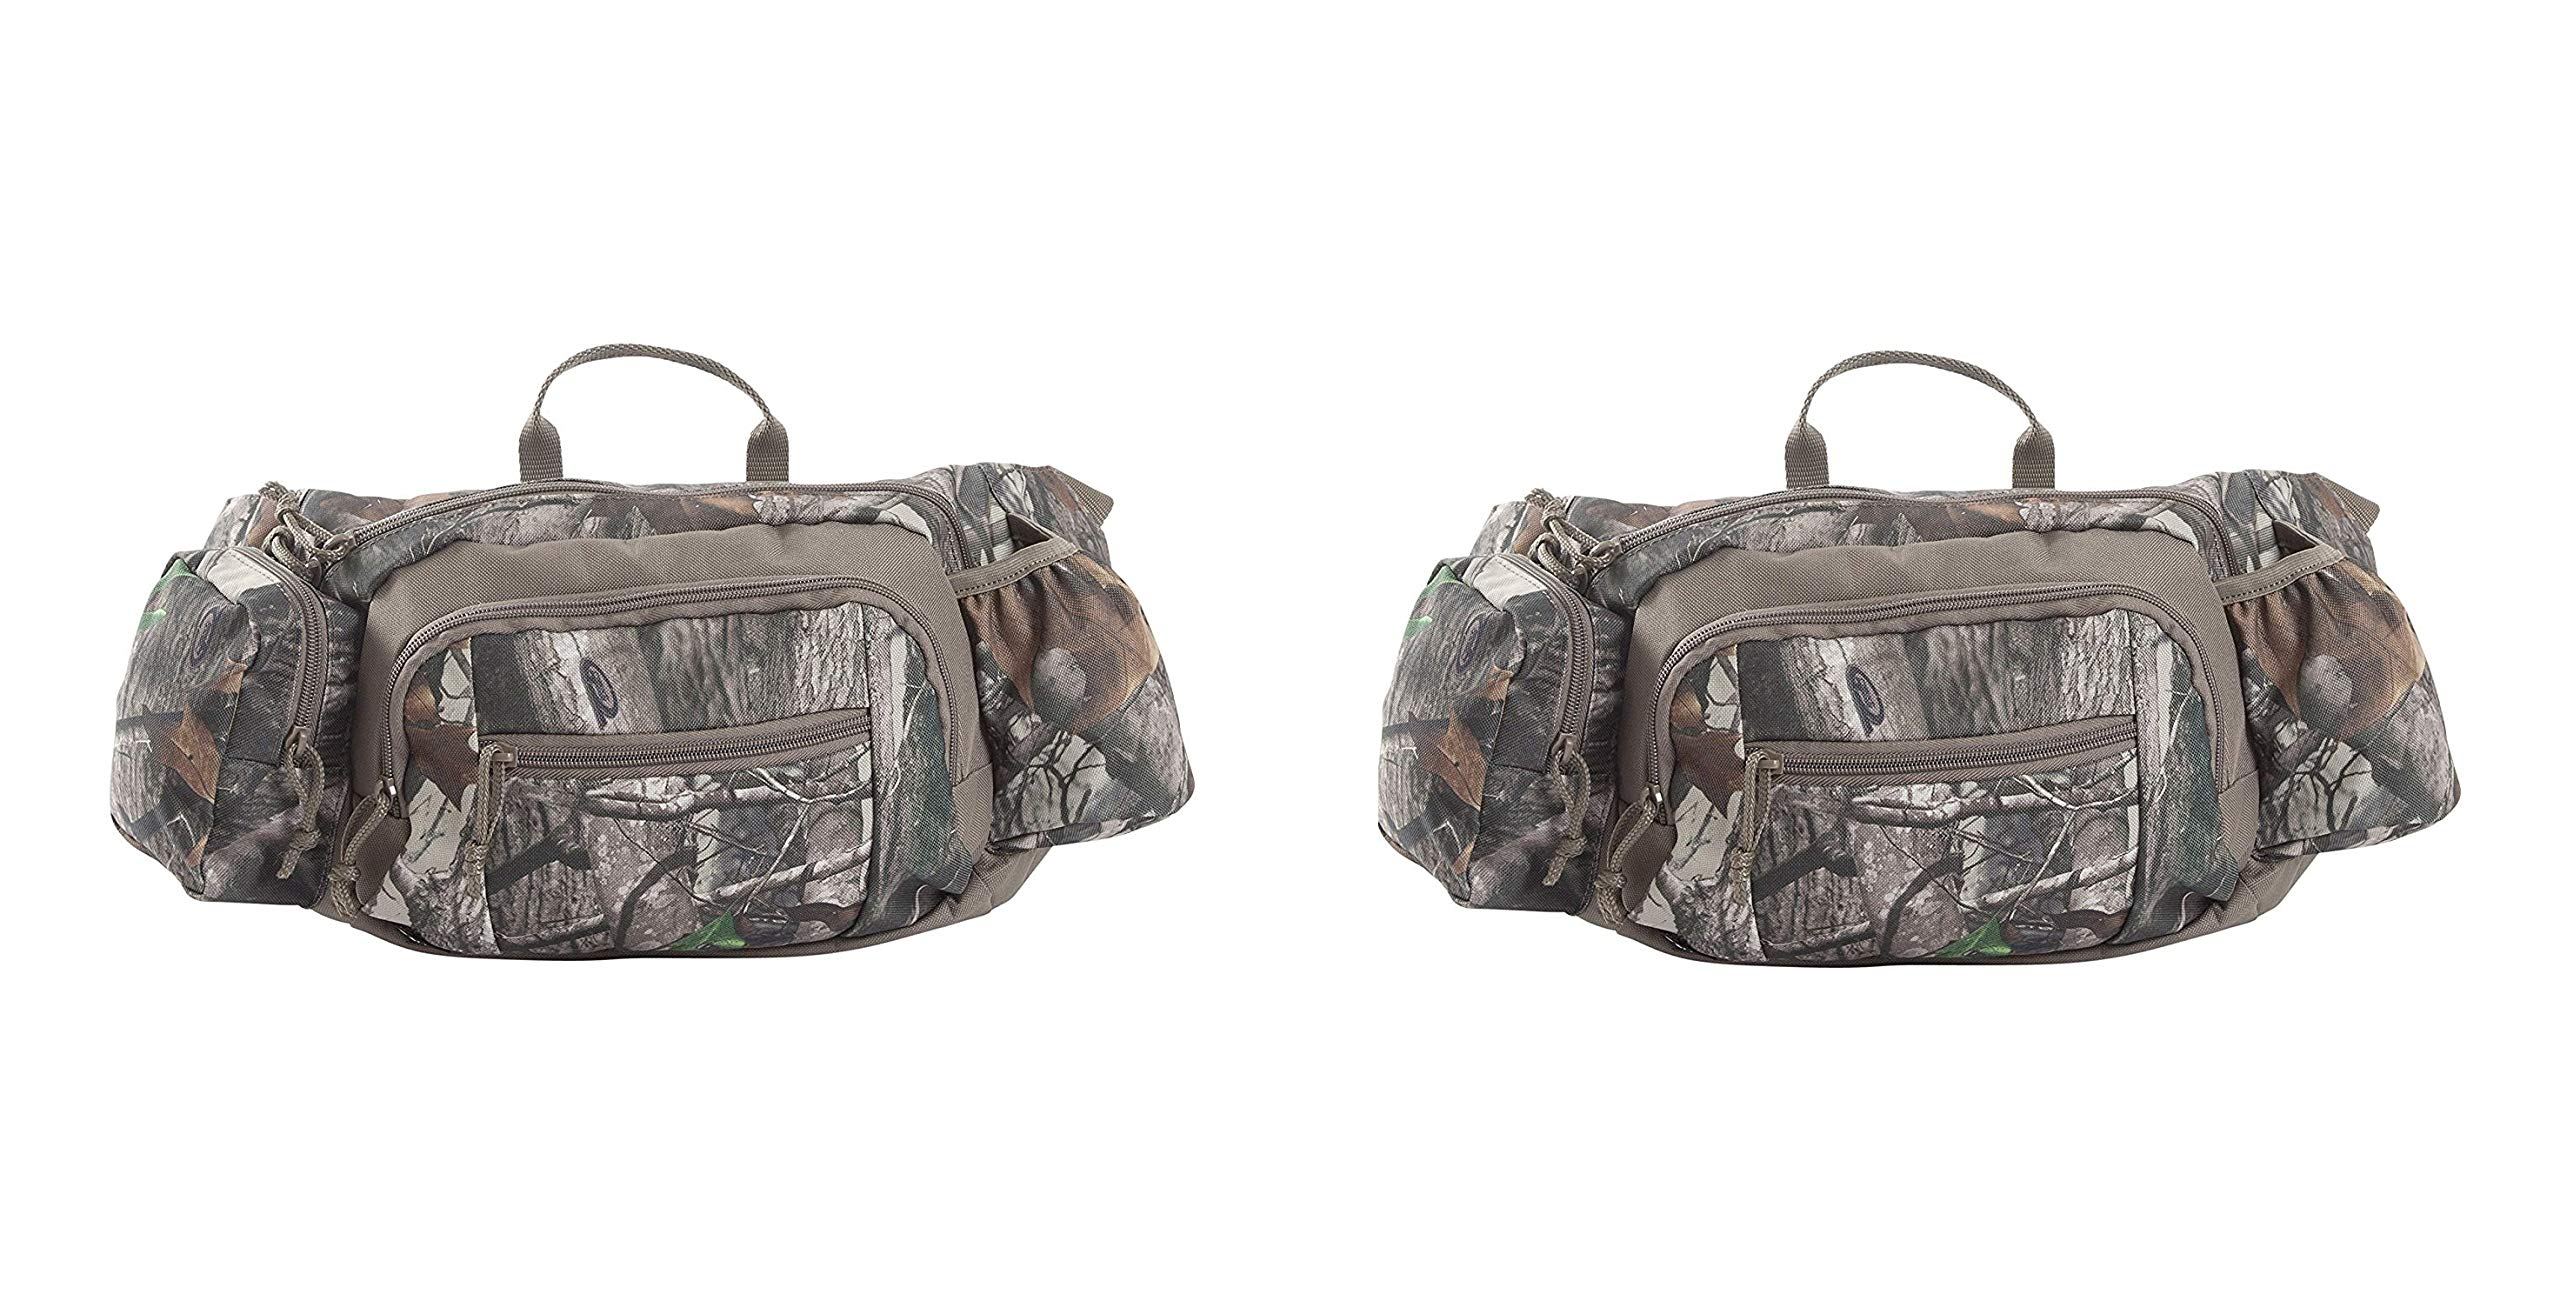 Allen Crusade Camo Hunting Waist Pack, 600 Cubic Inches, Next G2 (Pack of 2)